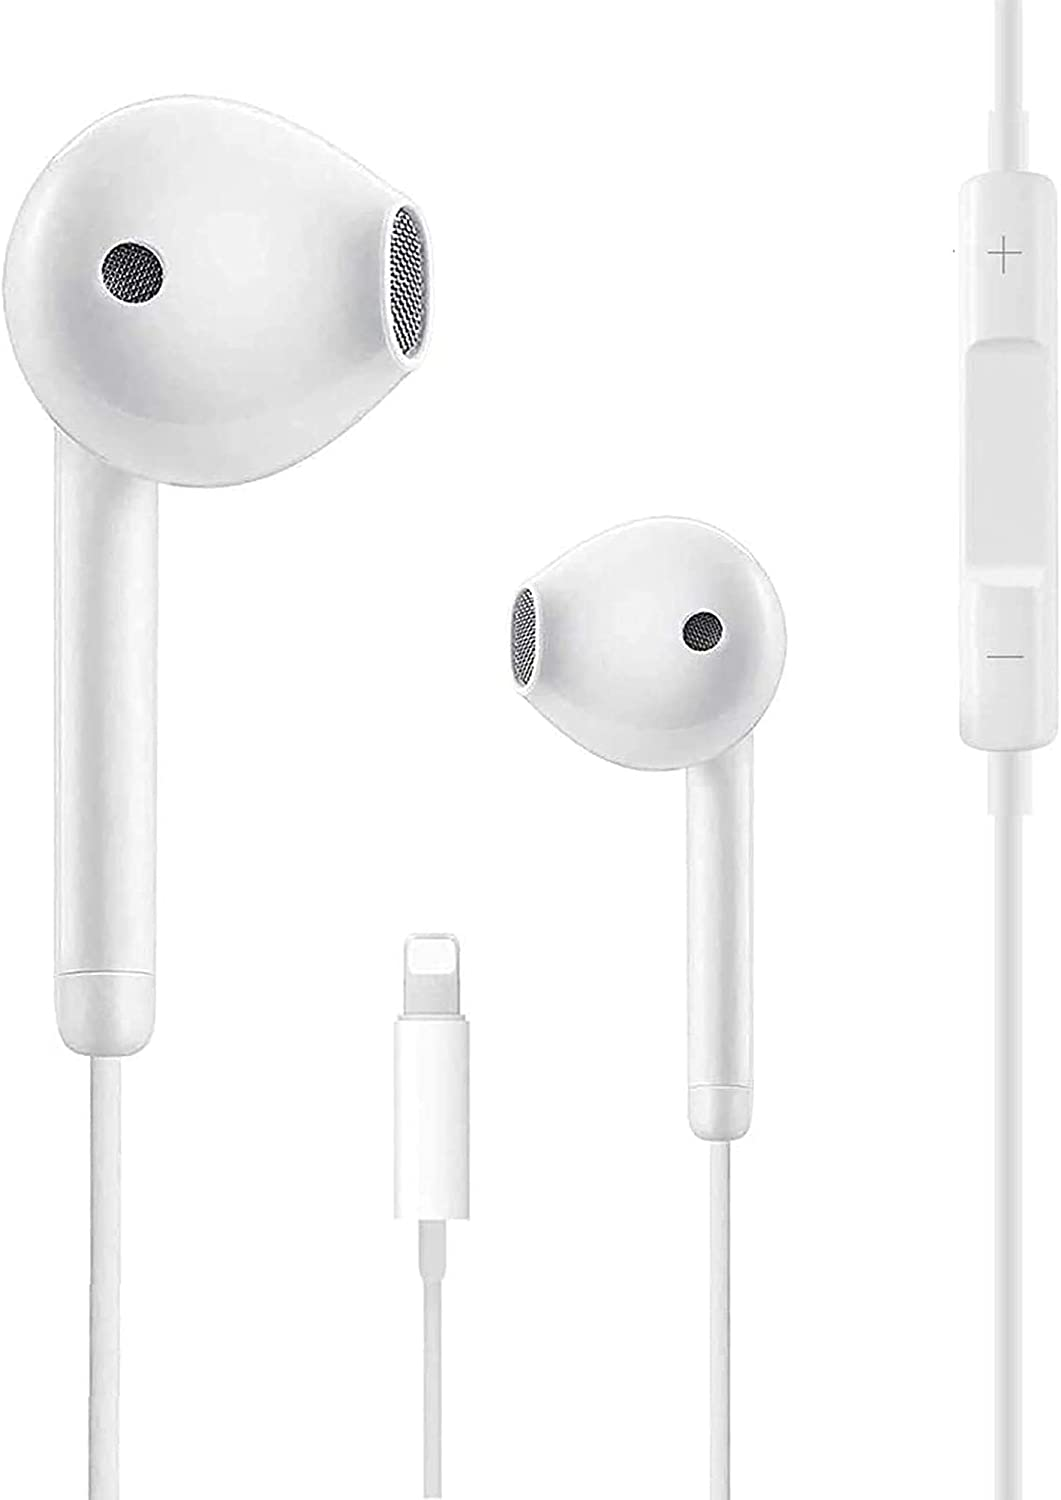 Headphones Earphones Wired Stereo Sound Earbuds for iPhone with Microphone and Volume Control,Active Noise Cancellation Compatible with iPhone 11Pro/12/7/8/11/X/XS/XR/7plus 8 (White)